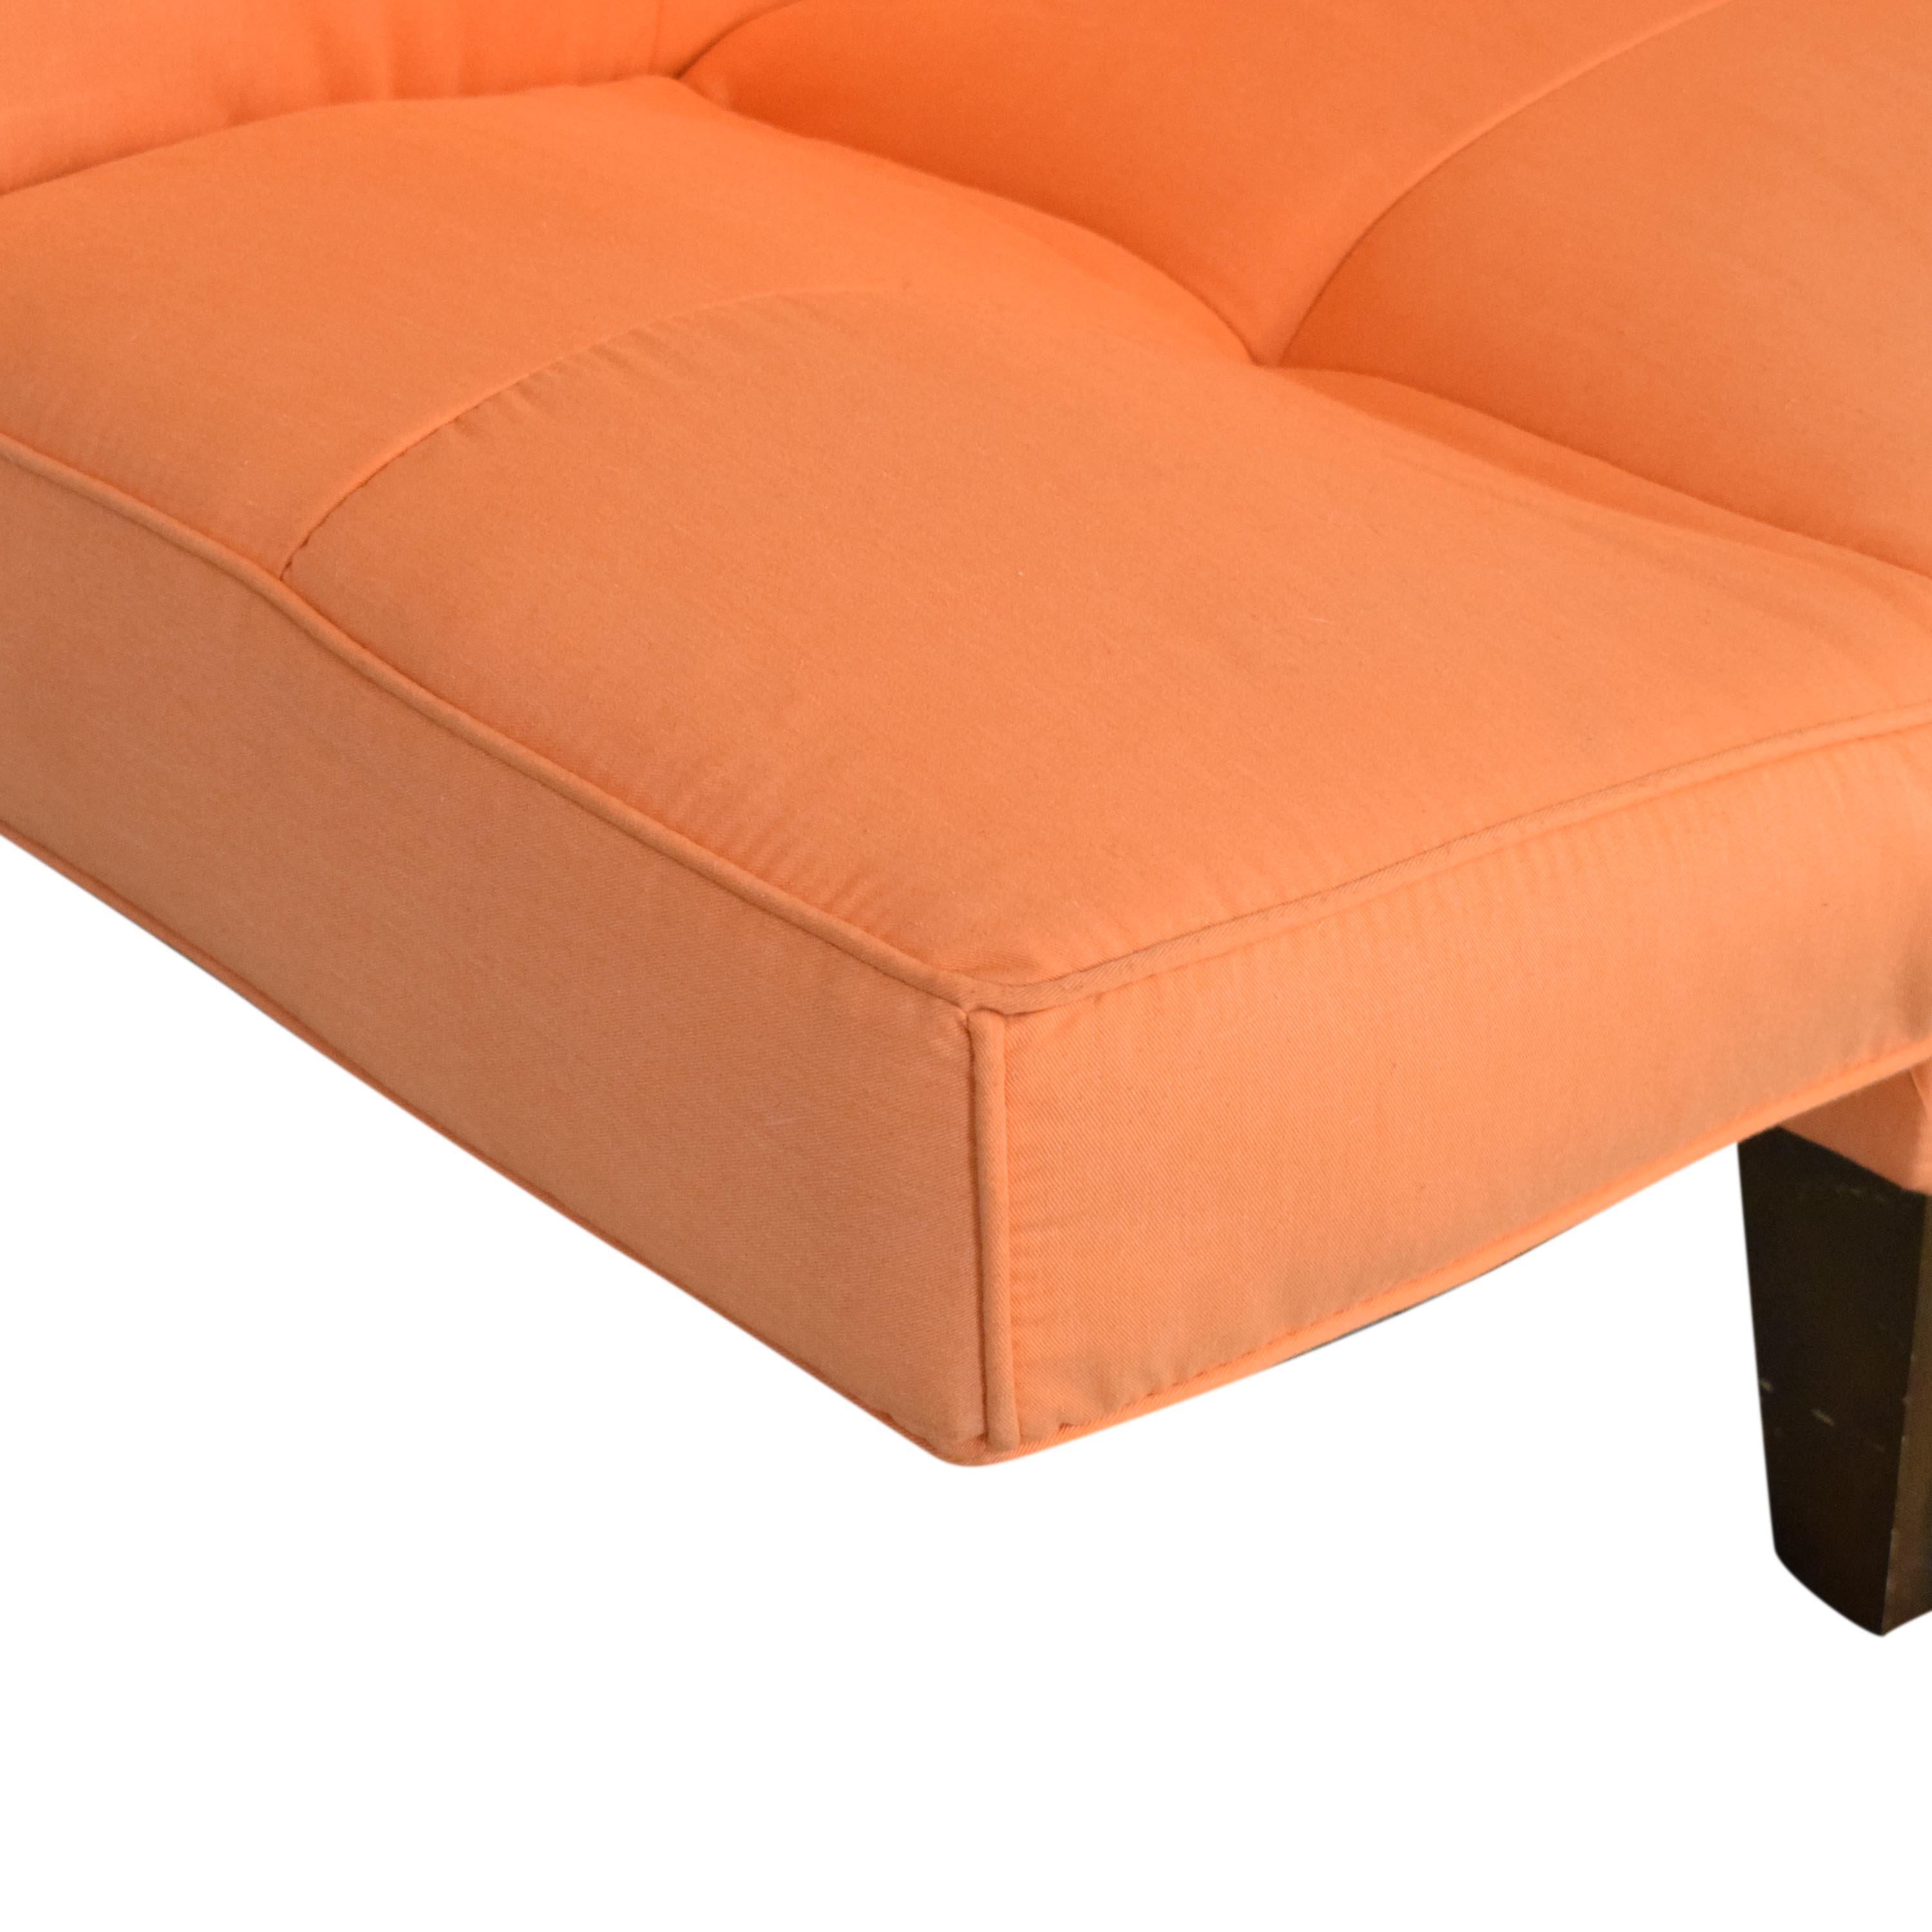 Multi Position Futon with Adjustable Arms Sofa Beds